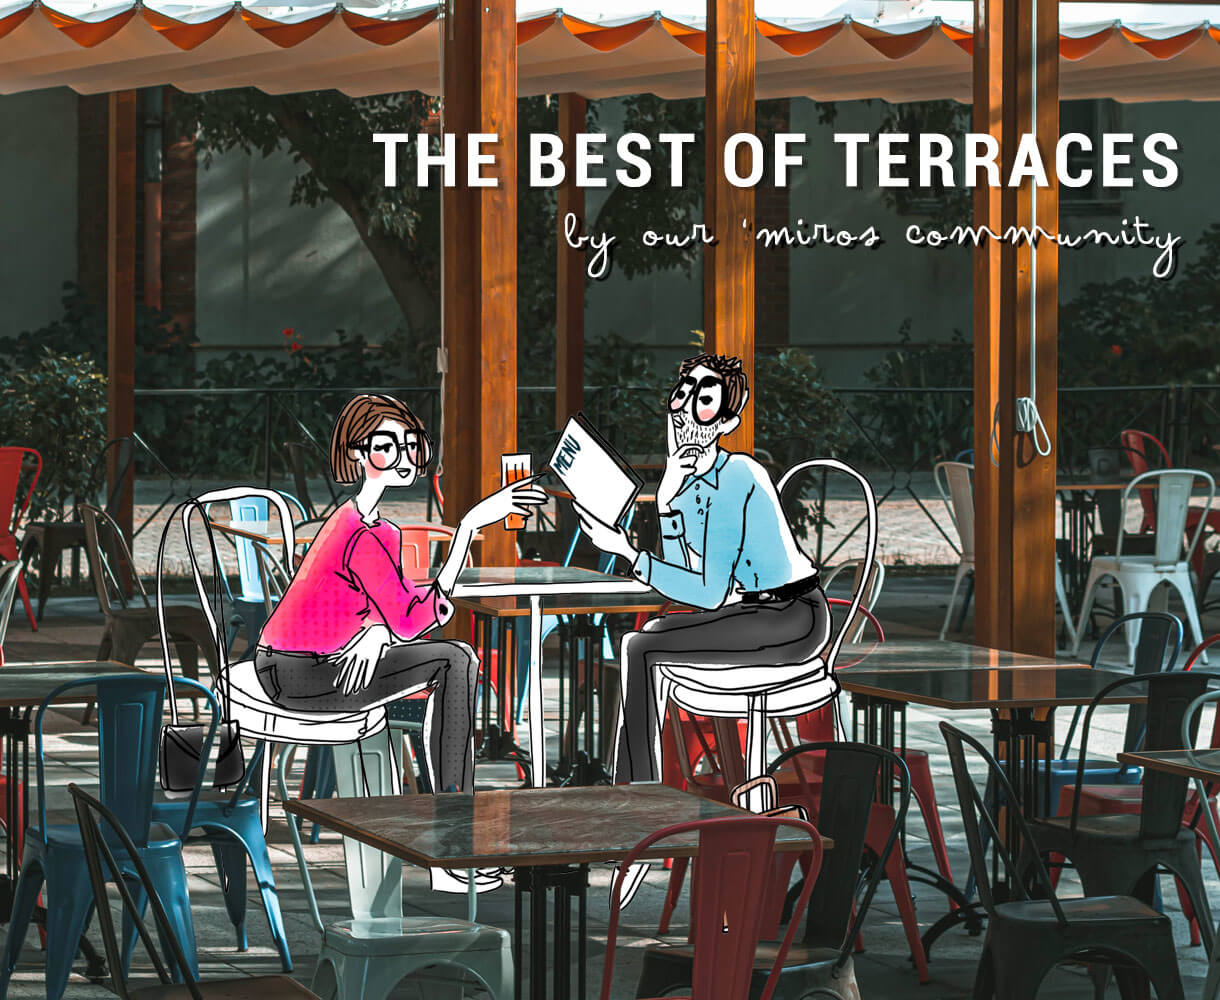 The best of terraces by our 'Miros